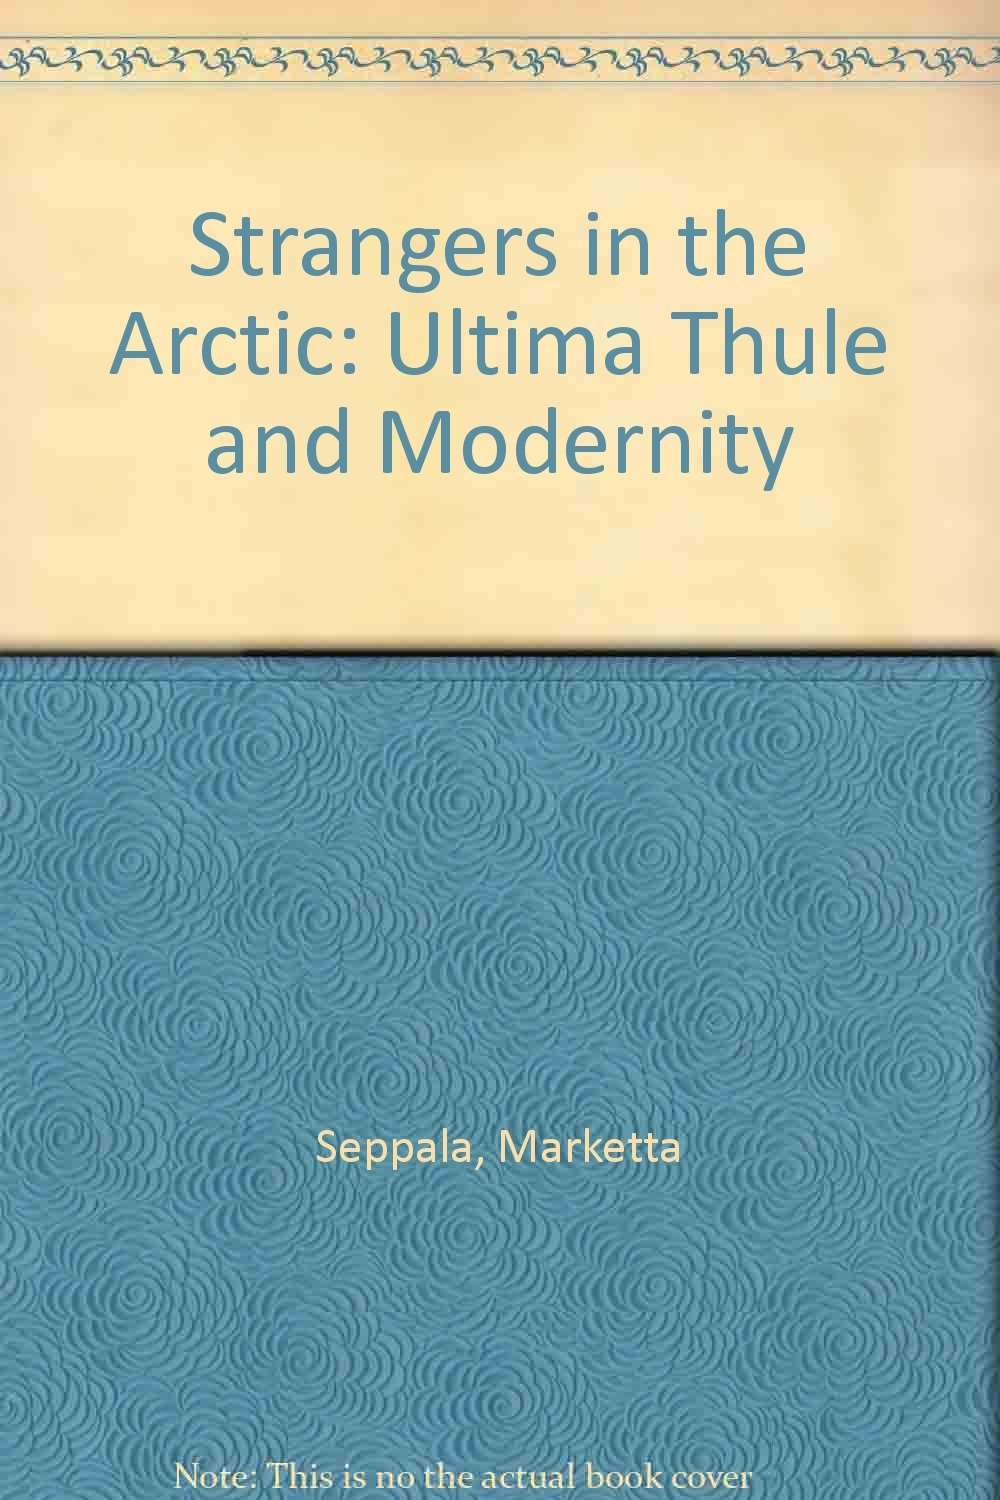 strangers in the arctic ultima thule and modernity